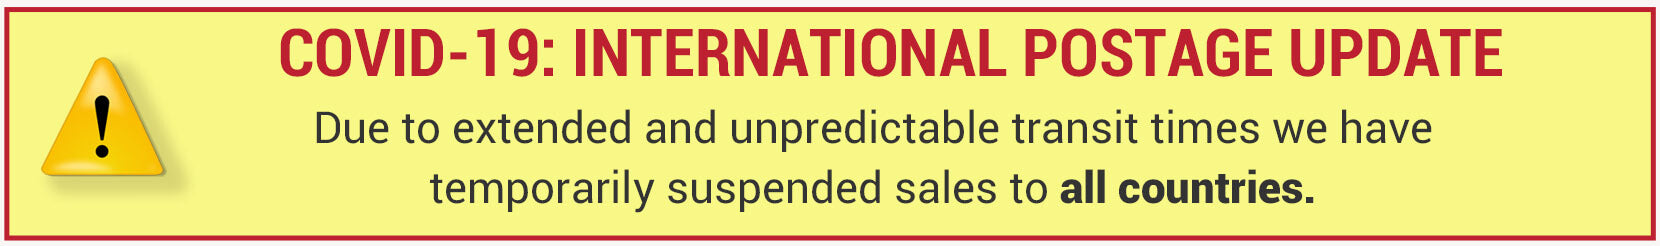 international postage: all countries suspended